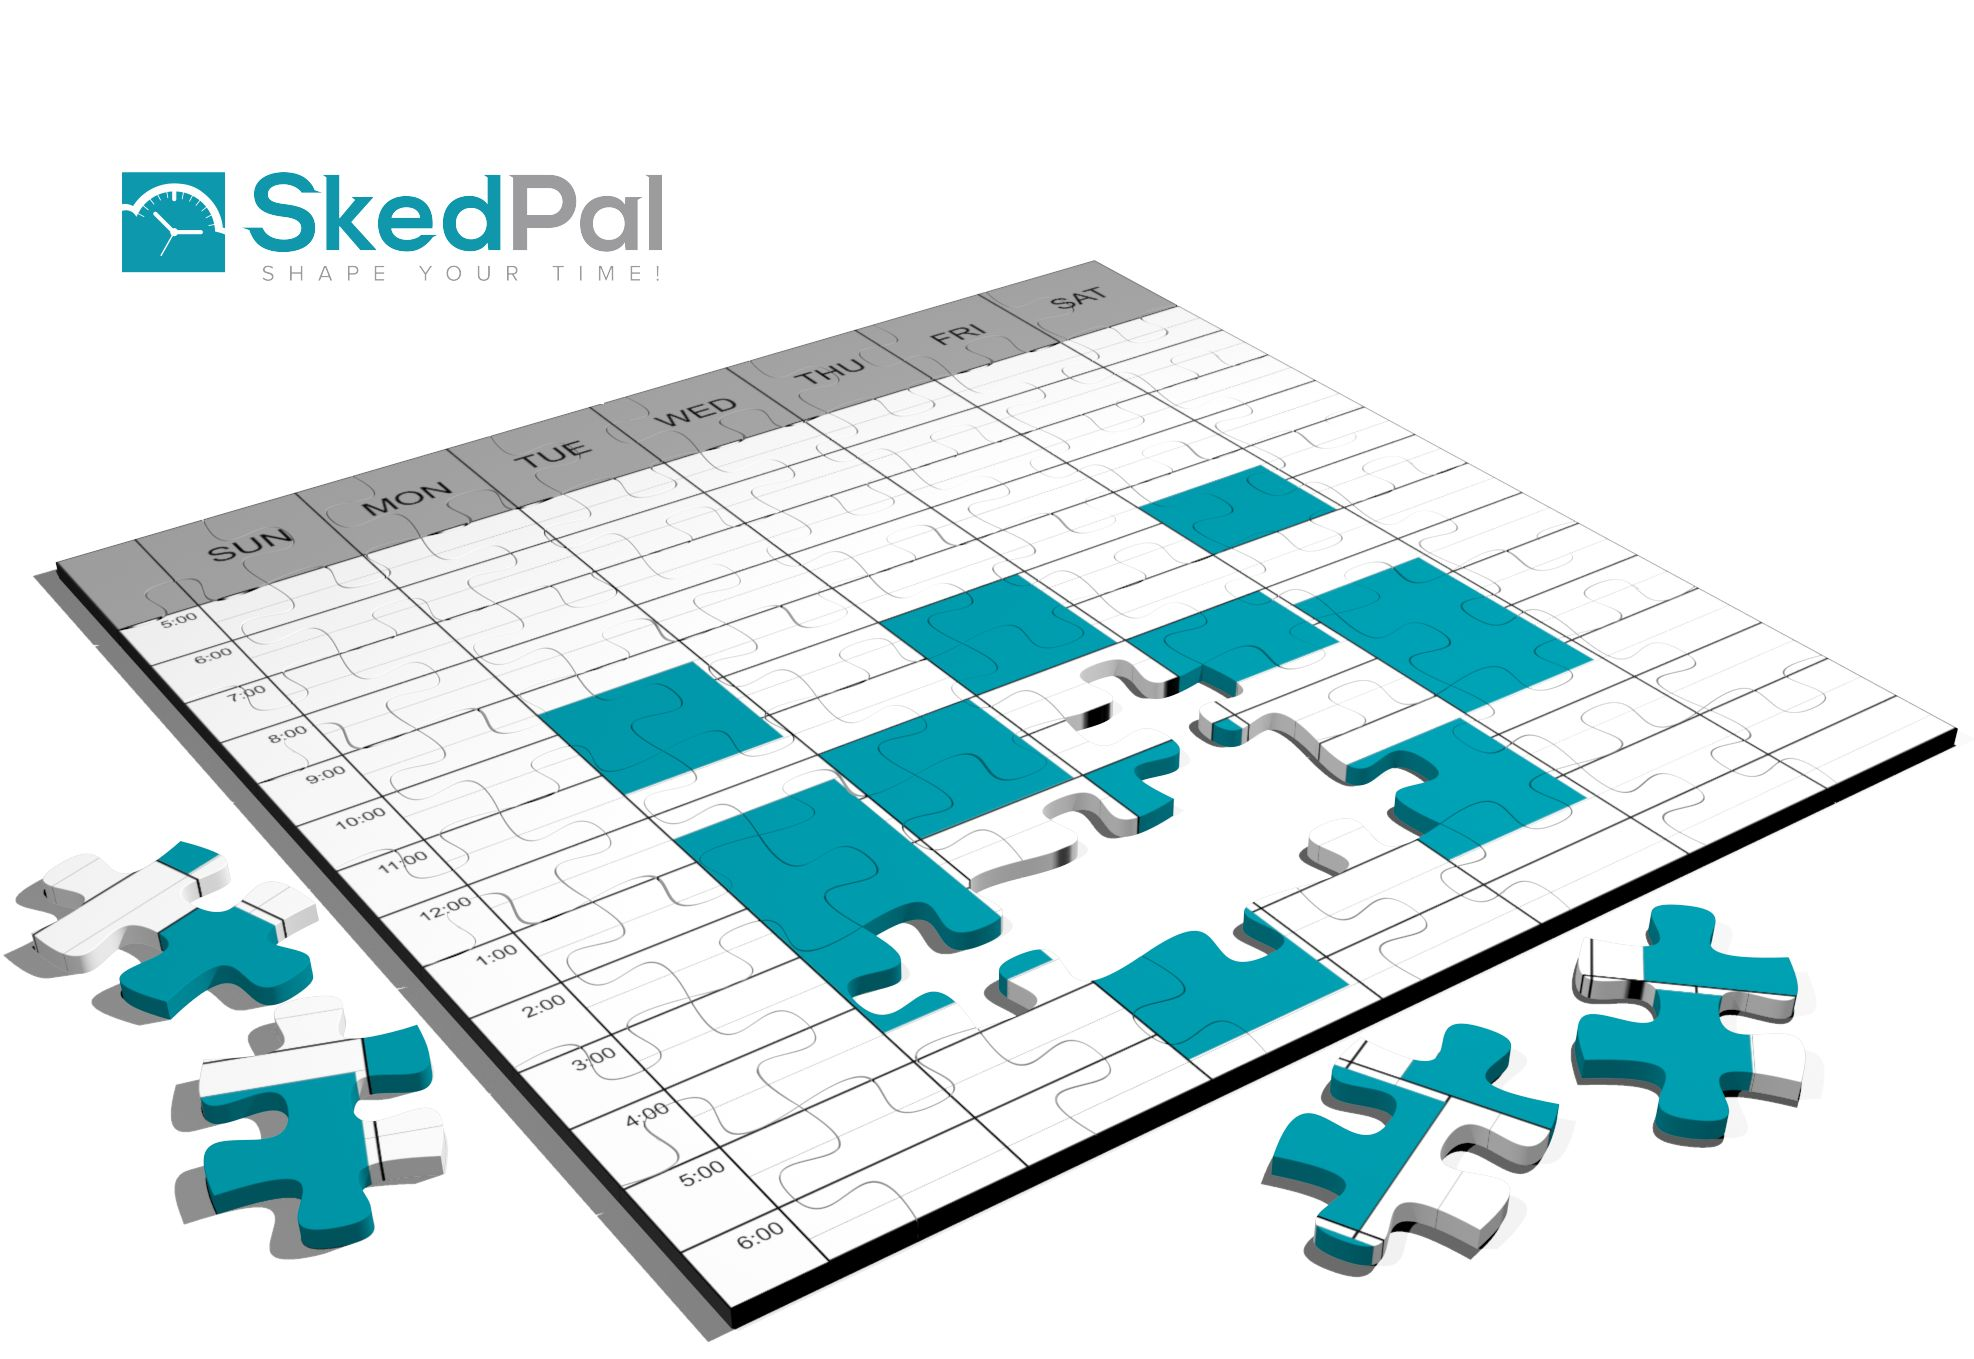 SkedPal – The Smart Calendar App That Schedules Your To-Do's Auotmagically!